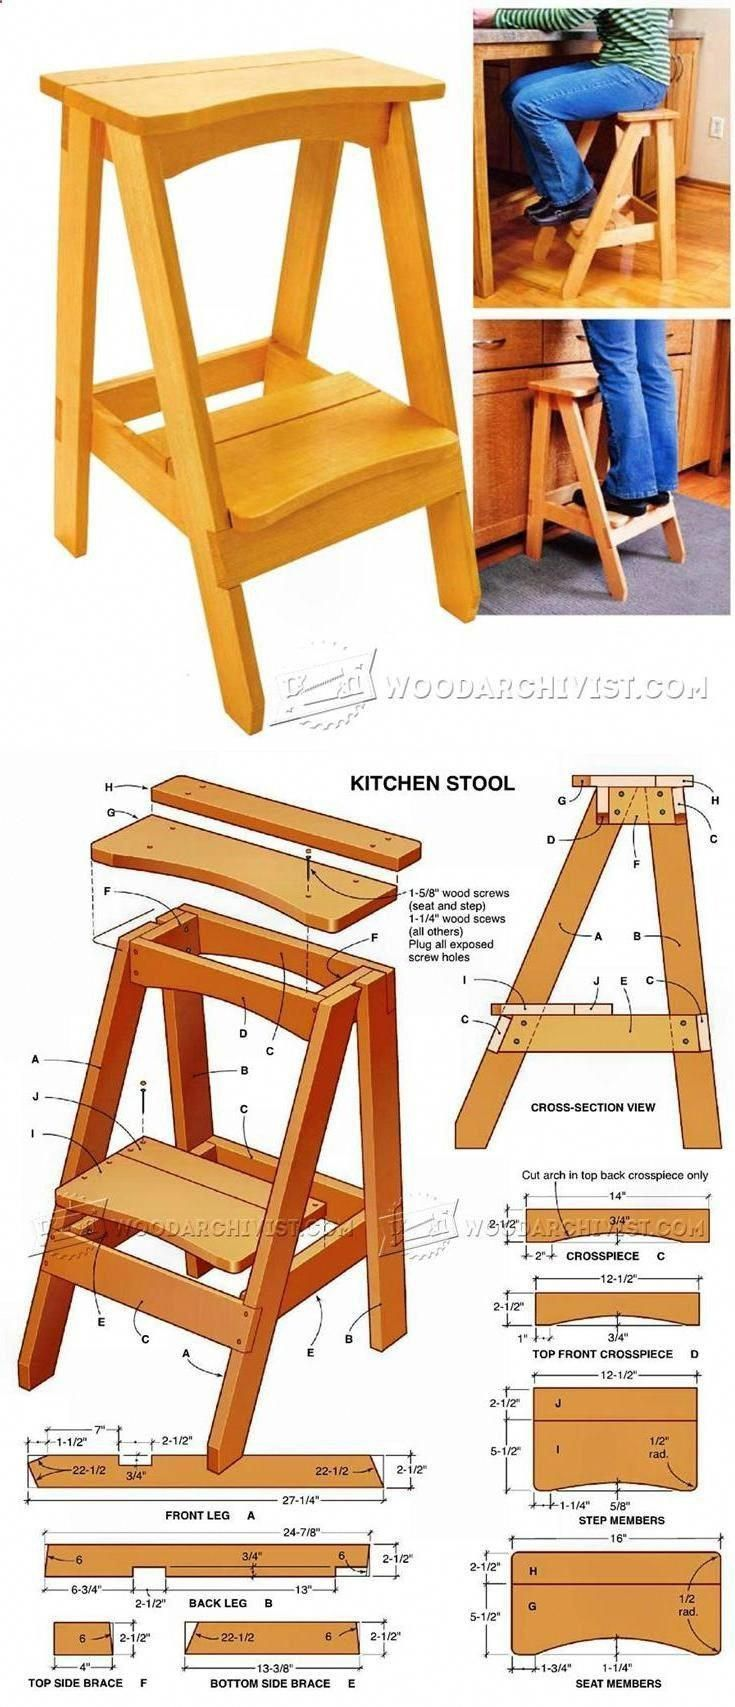 Rambunctious Beginner Woodworking Scroll Saw Woodworkingatnoon Treewoodprojects Woodworking Furniture Plans Kitchen Step Stool Furniture Plans